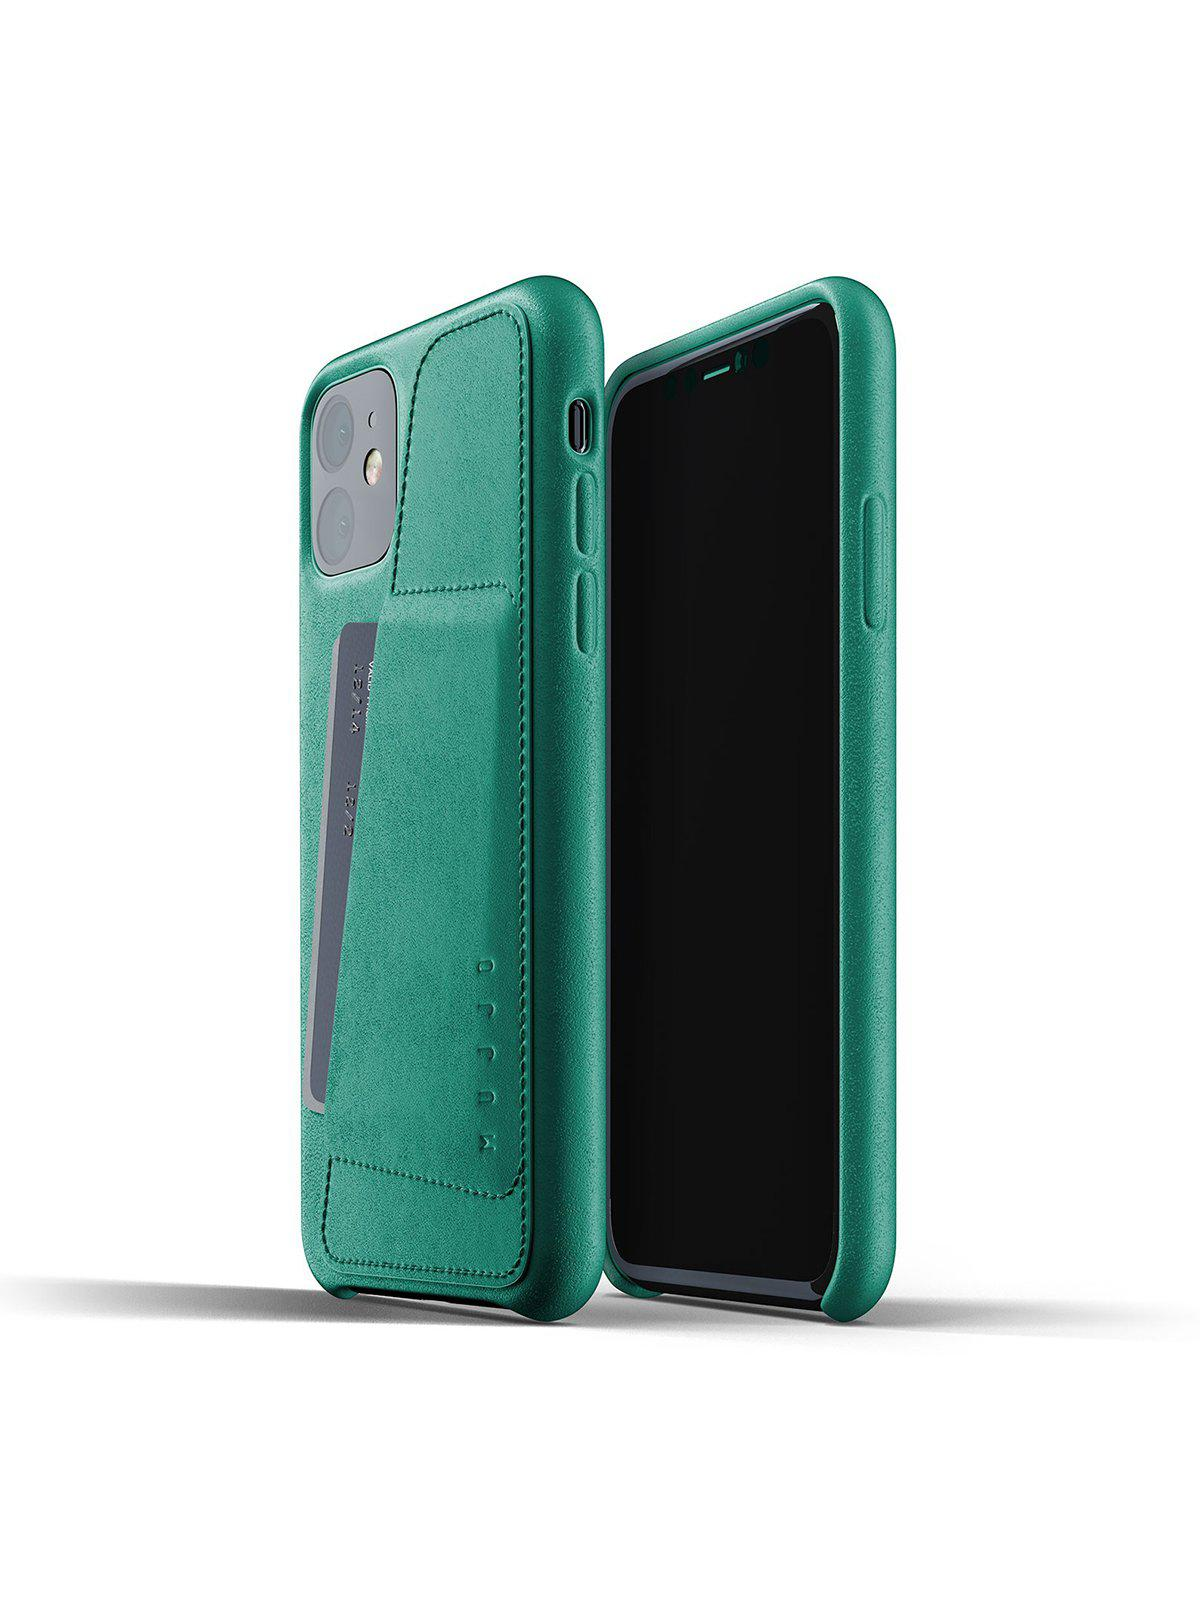 Mujjo Full Leather Wallet Case for iPhone 11 Alpine Green - MORE by Morello Indonesia